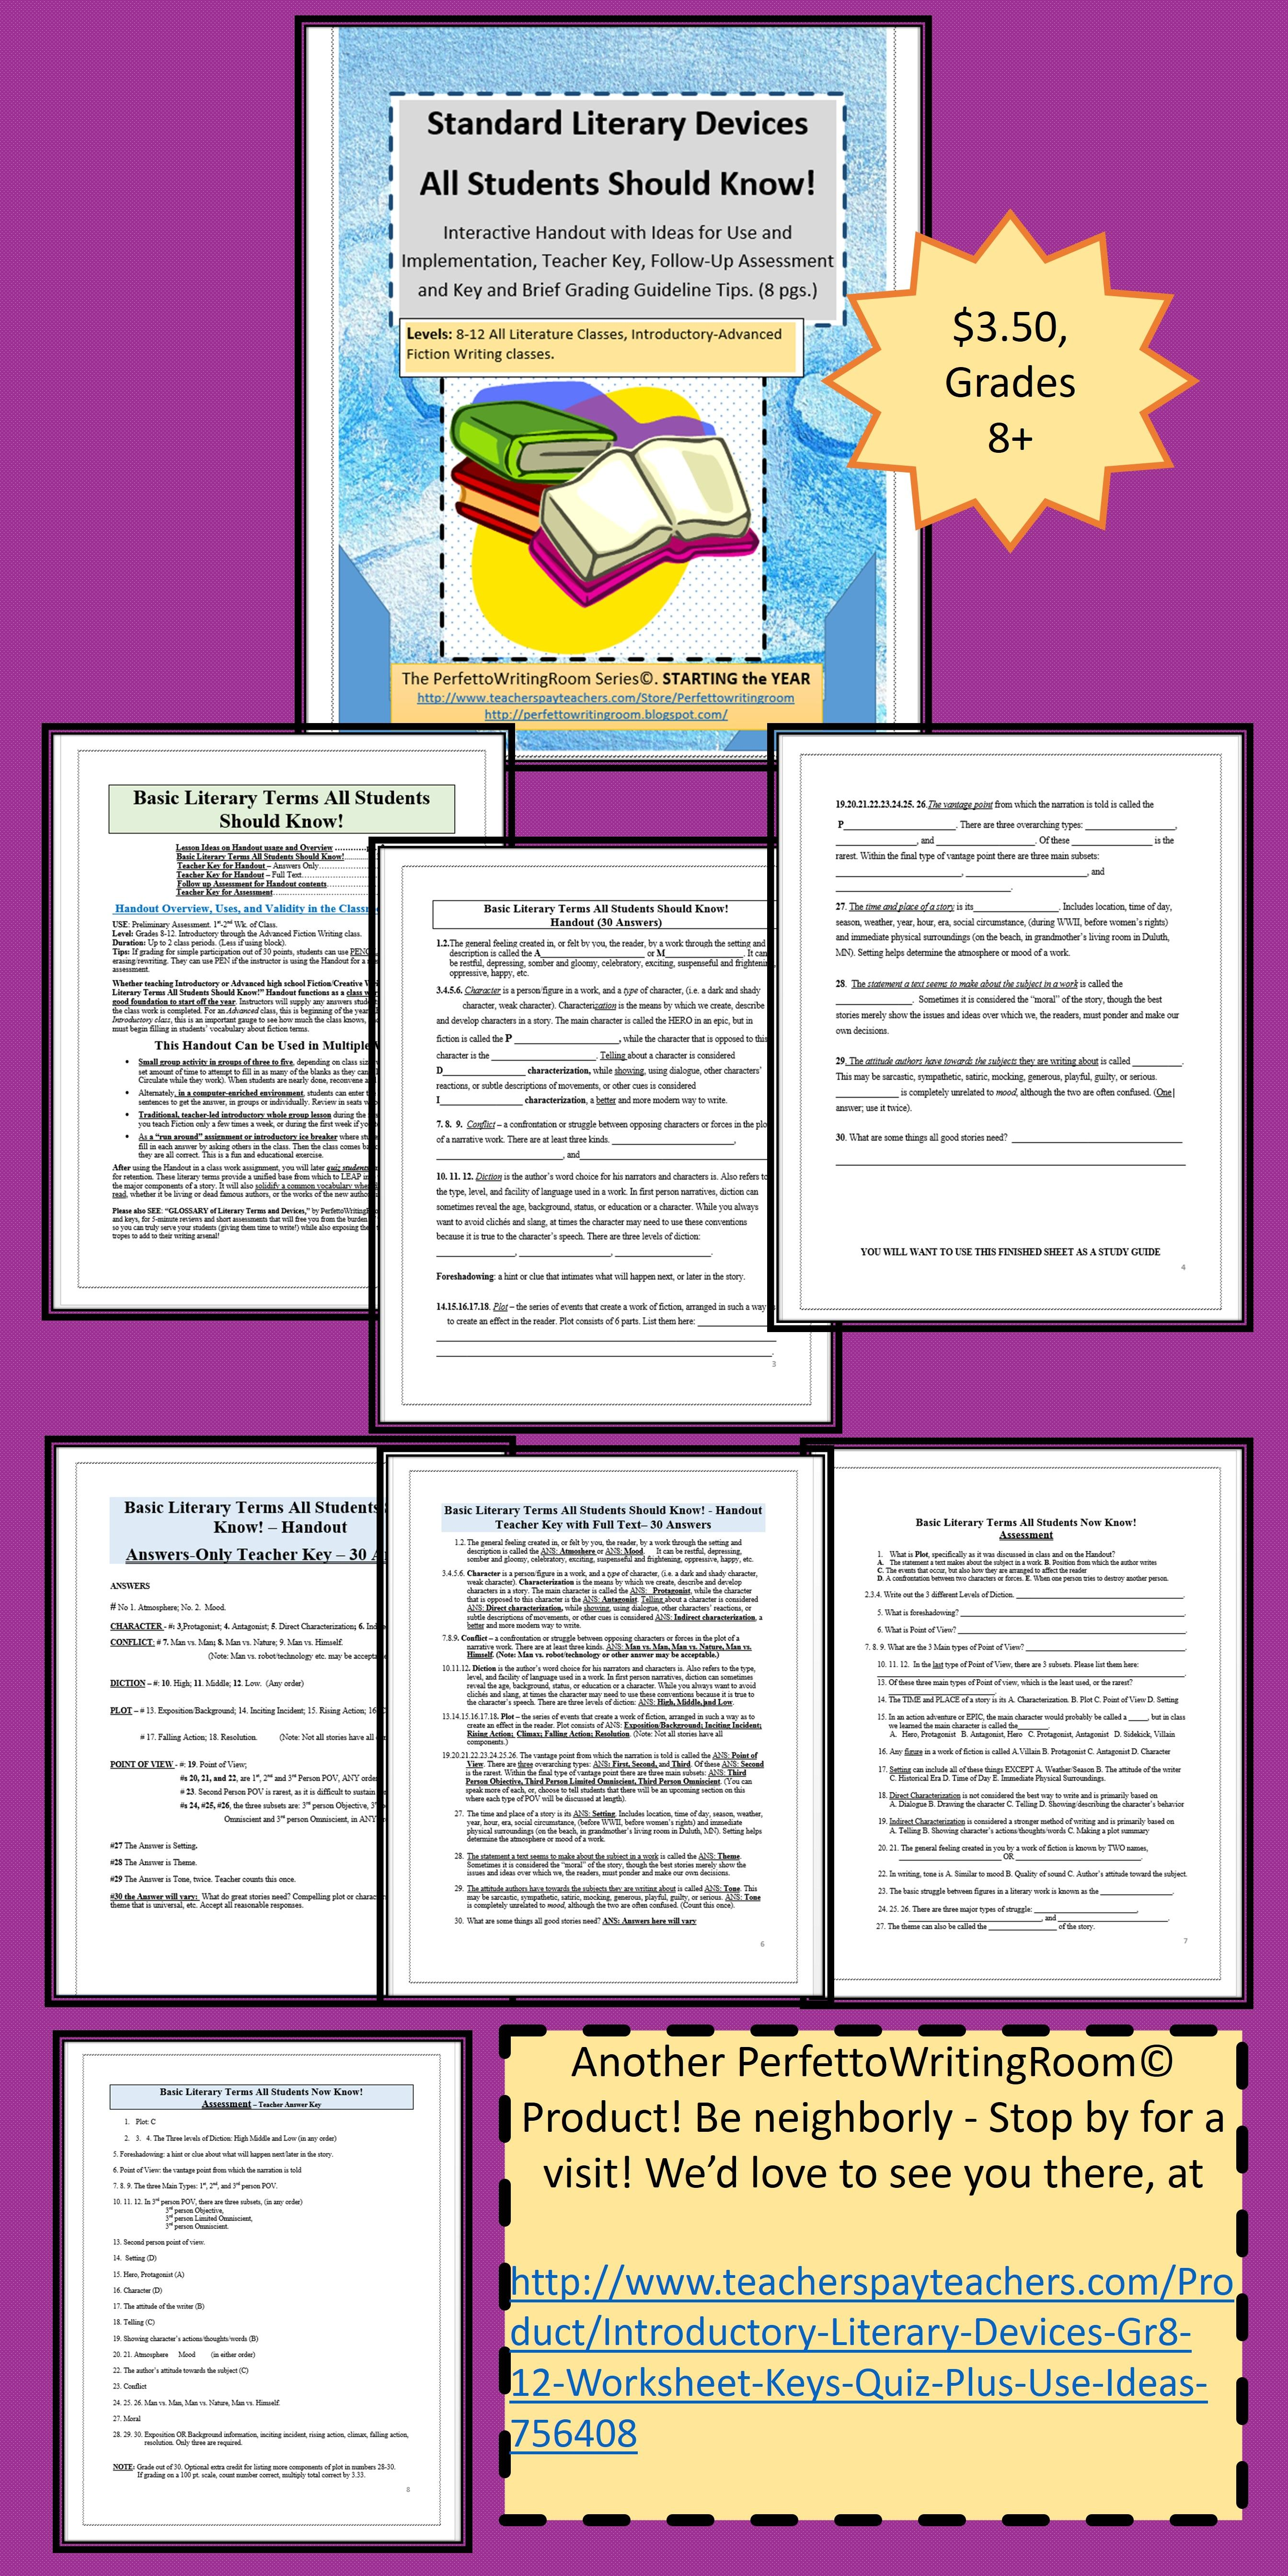 hight resolution of Introductory Literary Devices- Gr.7-12 Worksheet; Keys